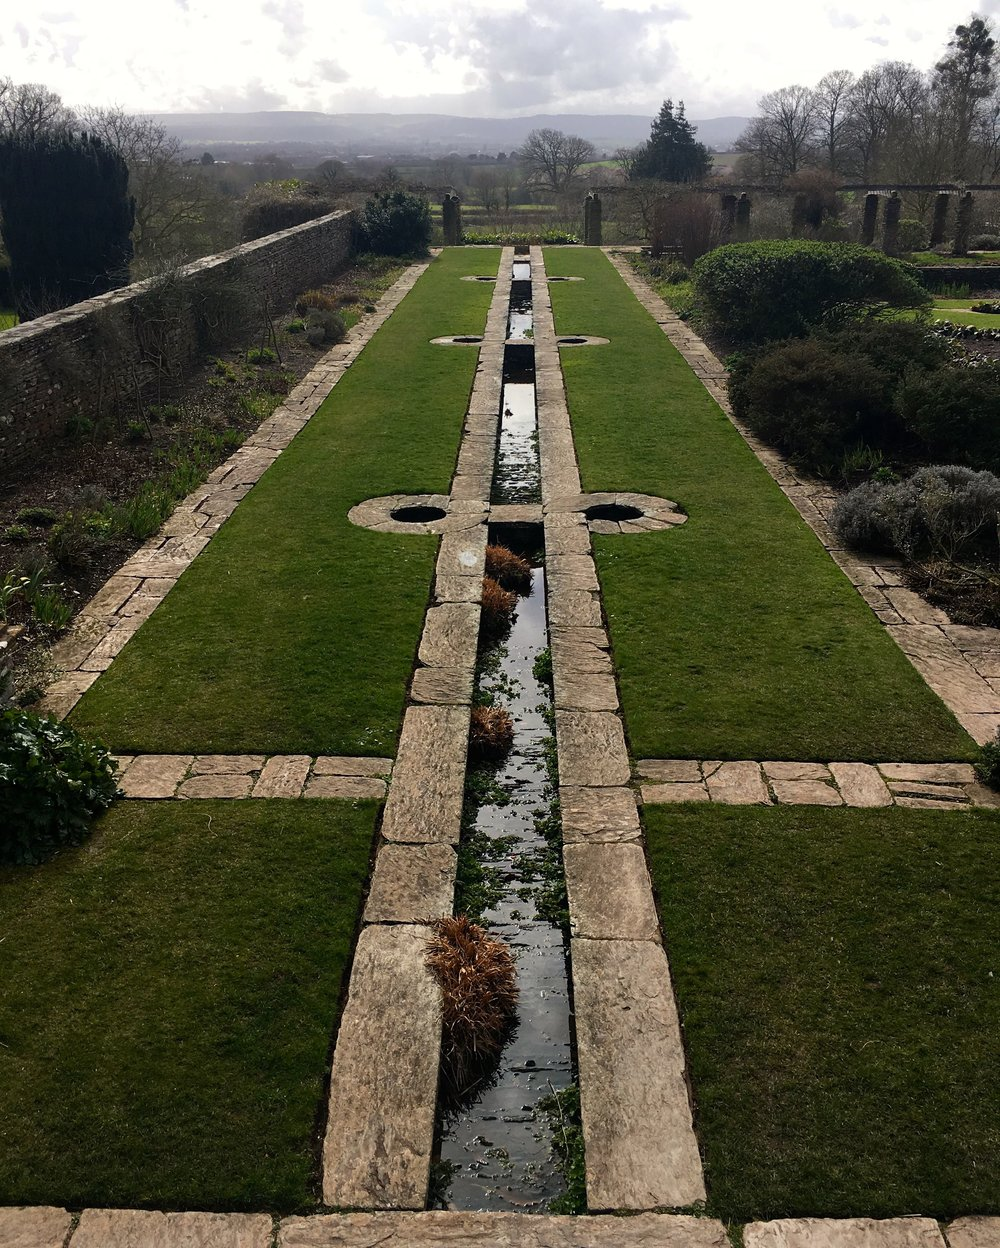 MAY:  THE EDWARDIAN FORMAL GARDEN AT HESTERCOMBE